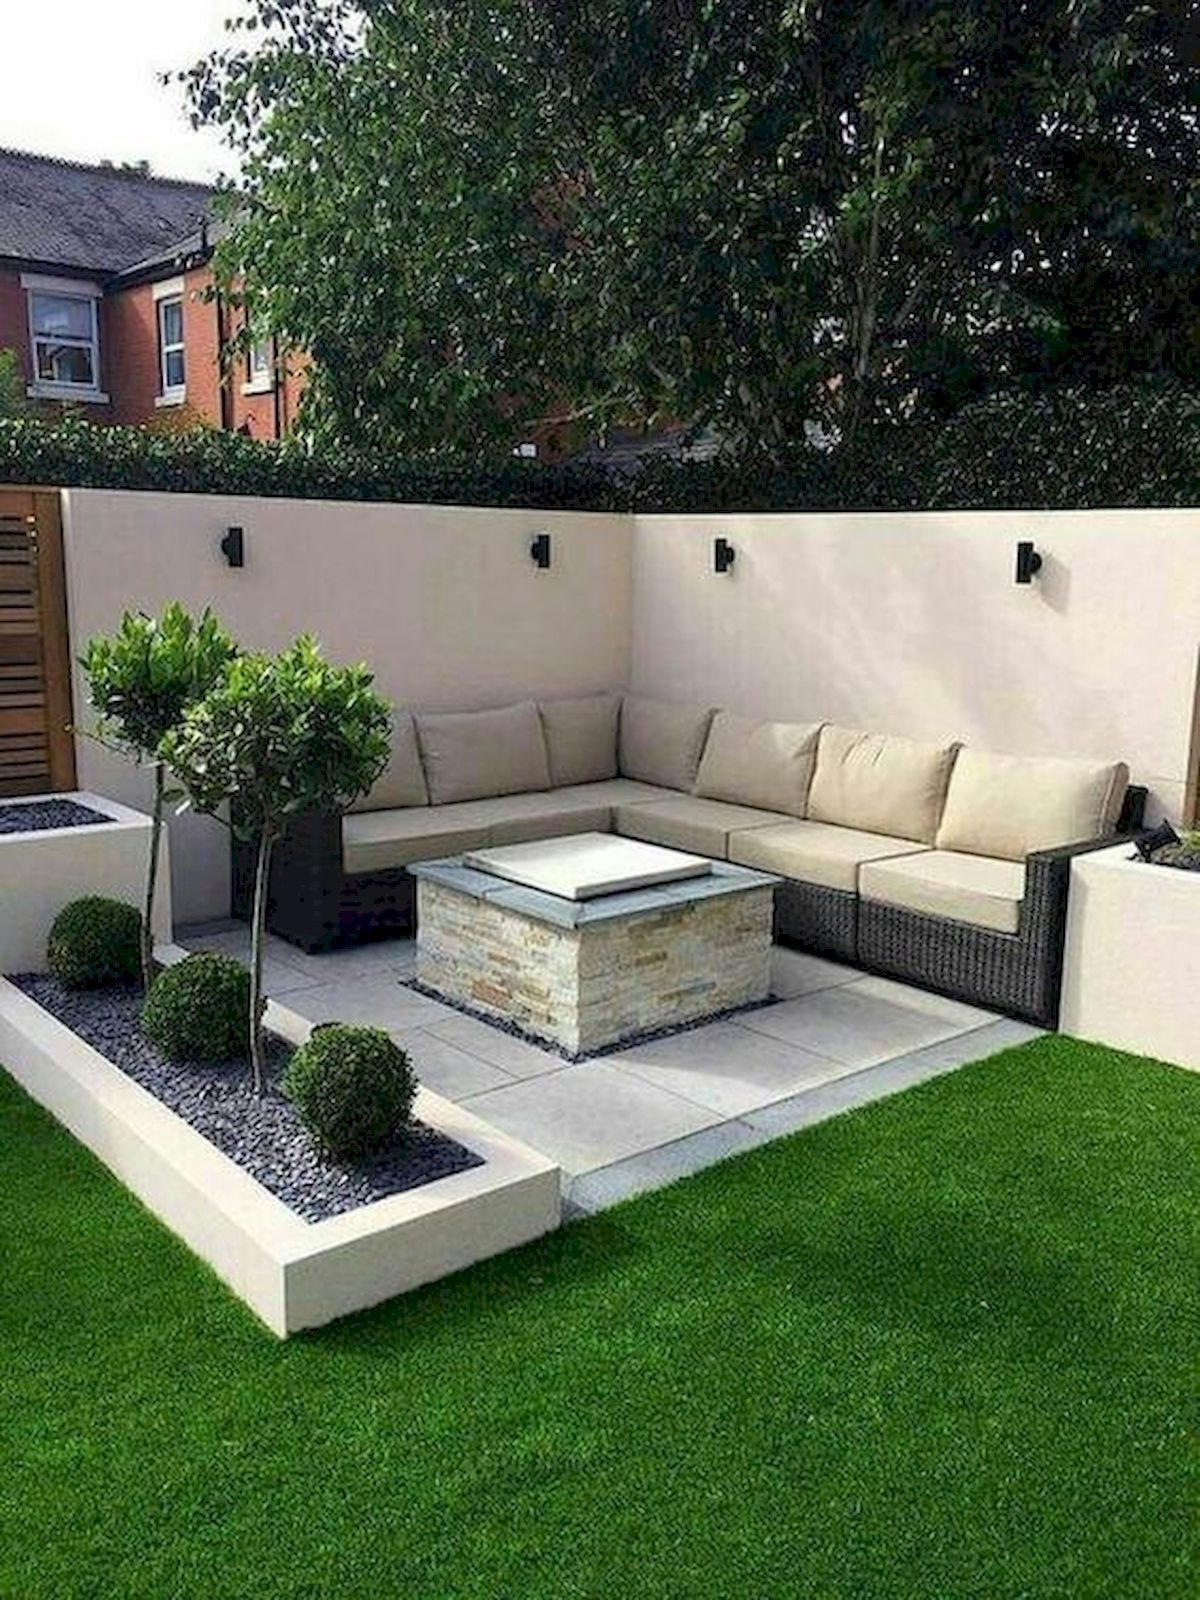 35 Small Garden Design Ideas On A Budget 8 Worldecor Co Outdoor Gardens Design Backyard Garden Design Simple Garden Designs